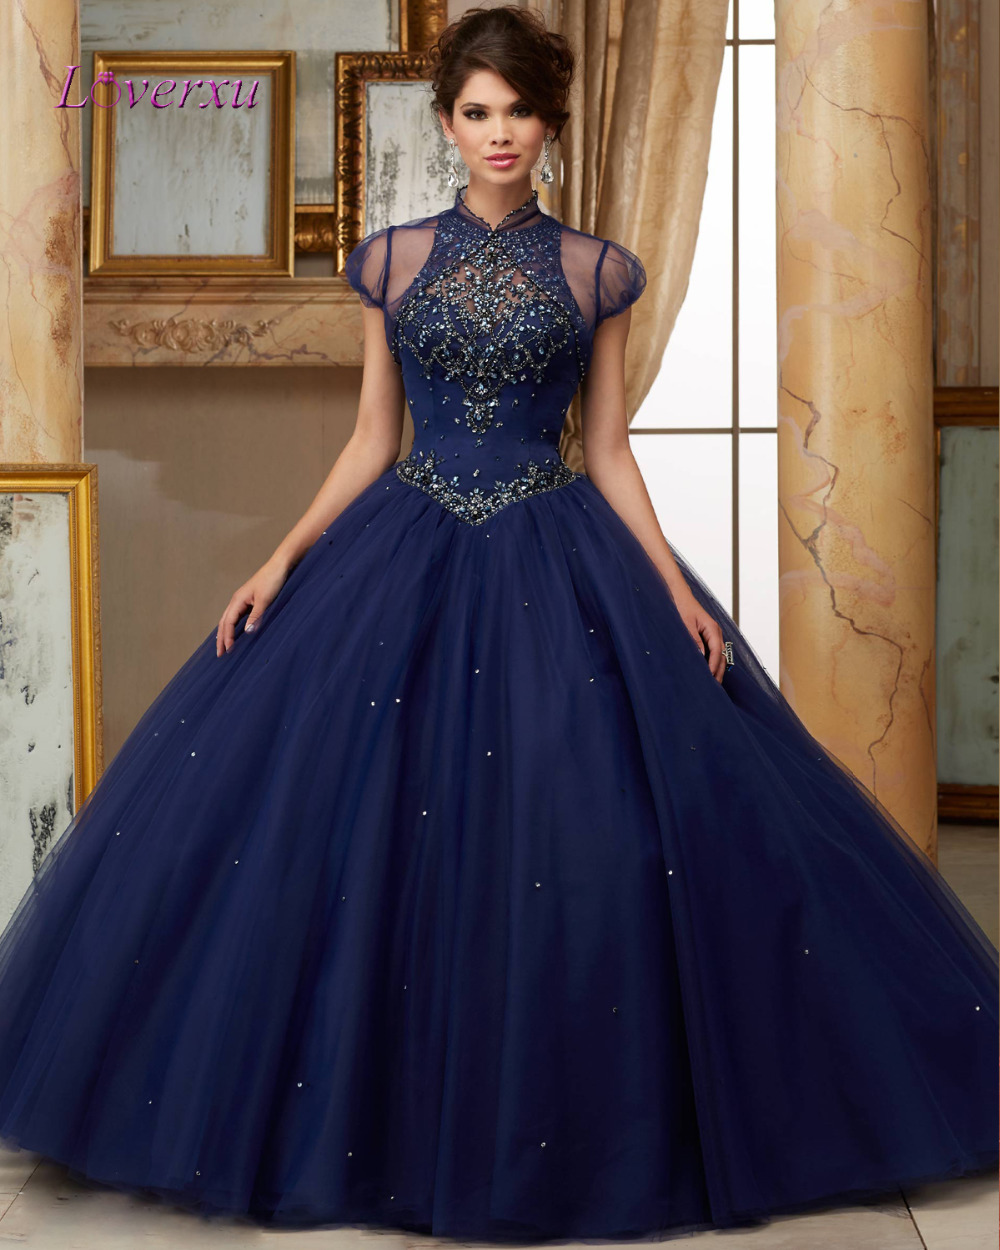 Blue Ball Gown With Sleeves - Missy Dress